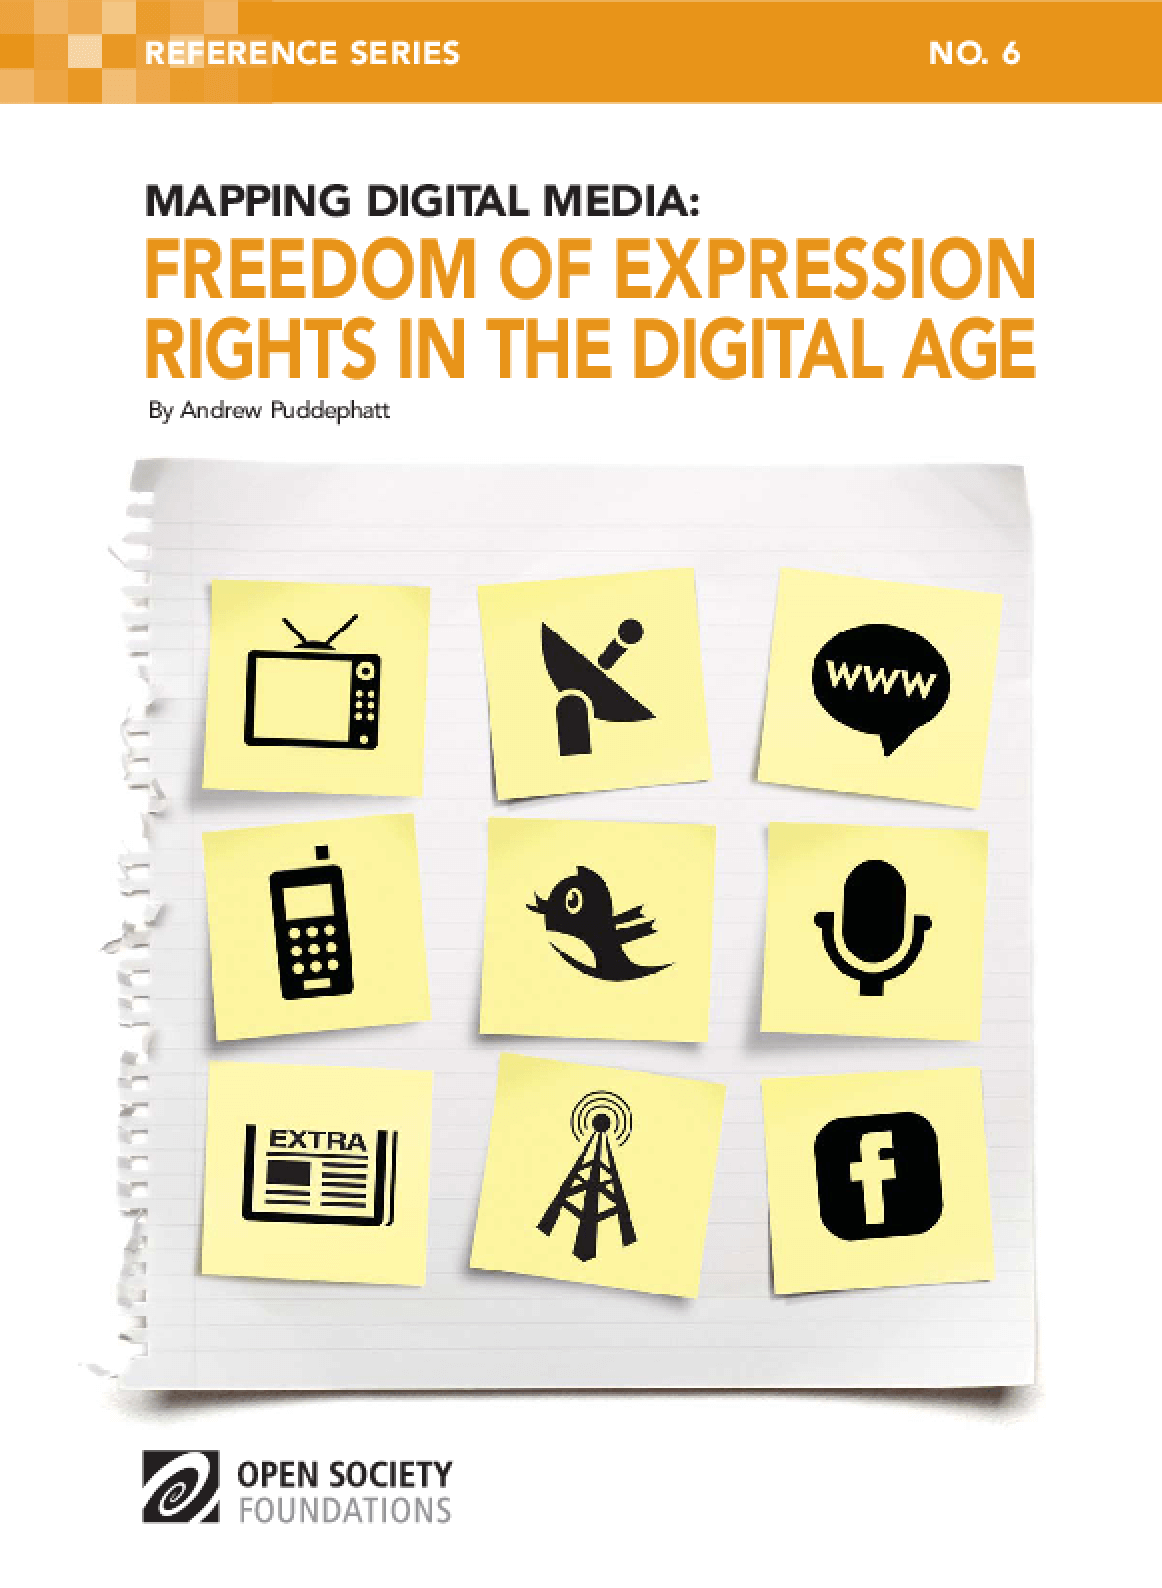 Mapping Digital Media: Freedom of Expression Rights in the Digital Age